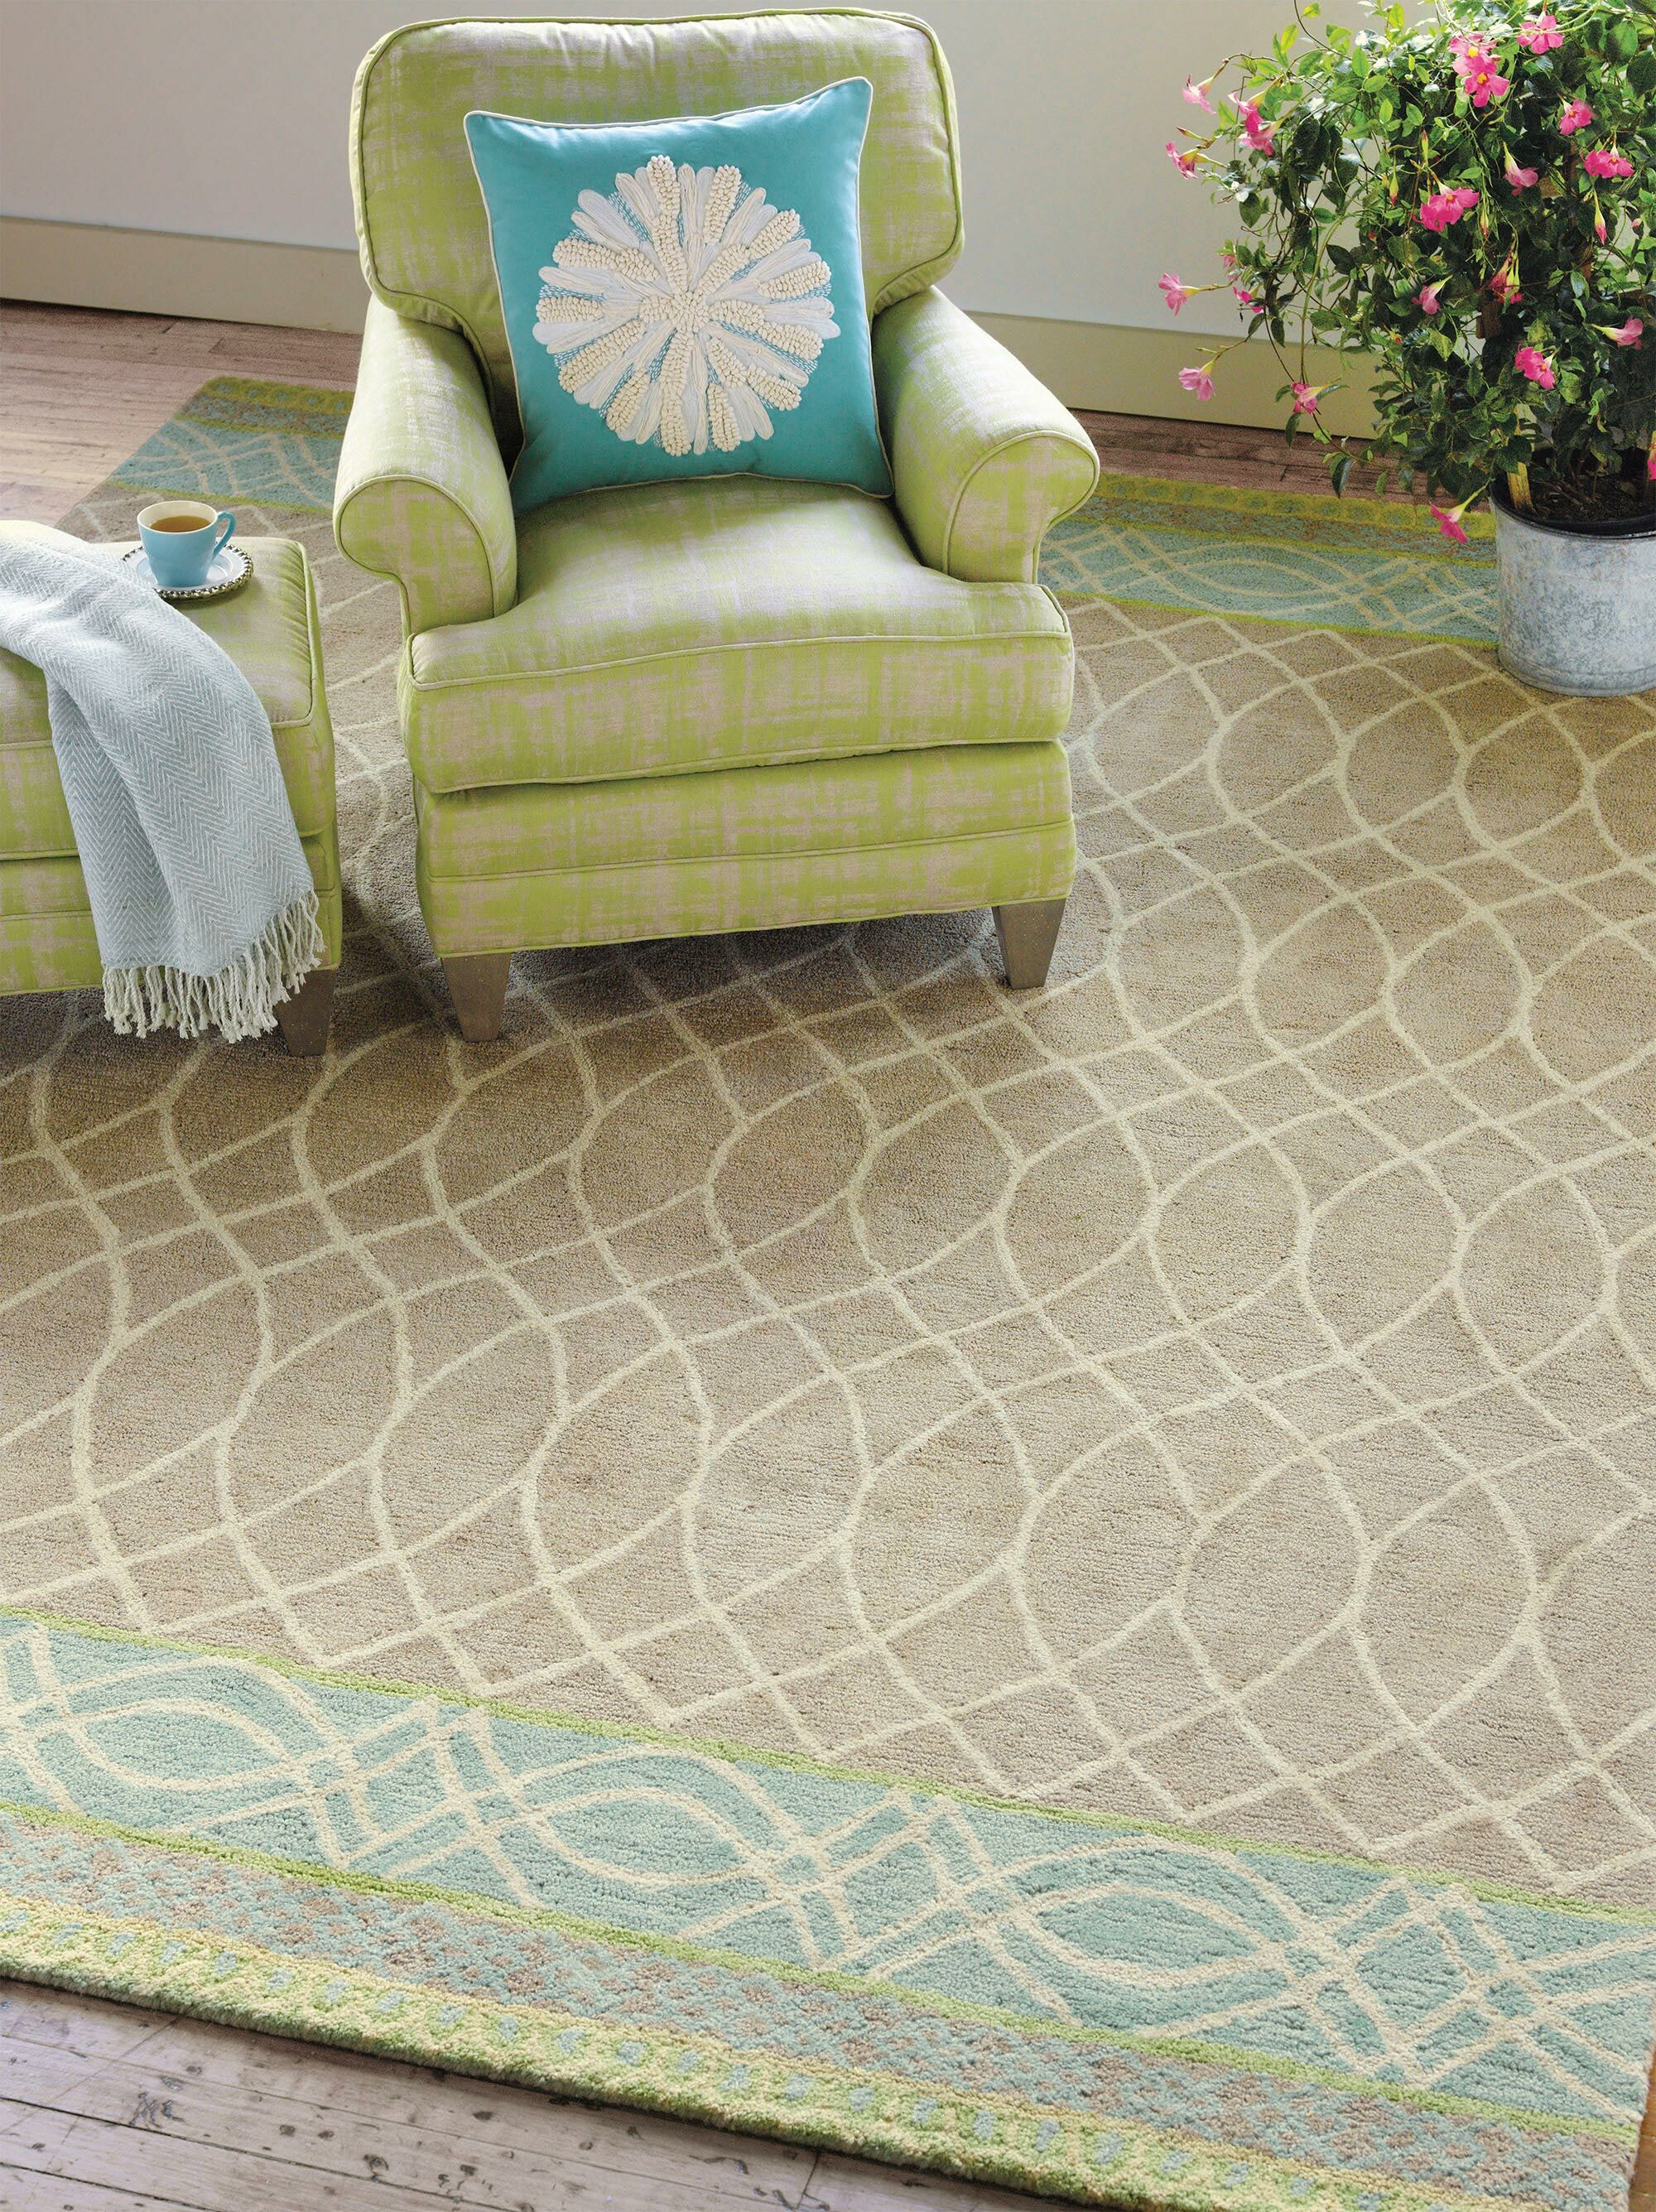 Lattice Swirl Hand Tufted Aqua/Brown Area Rug Rug Size: 9' x 13'